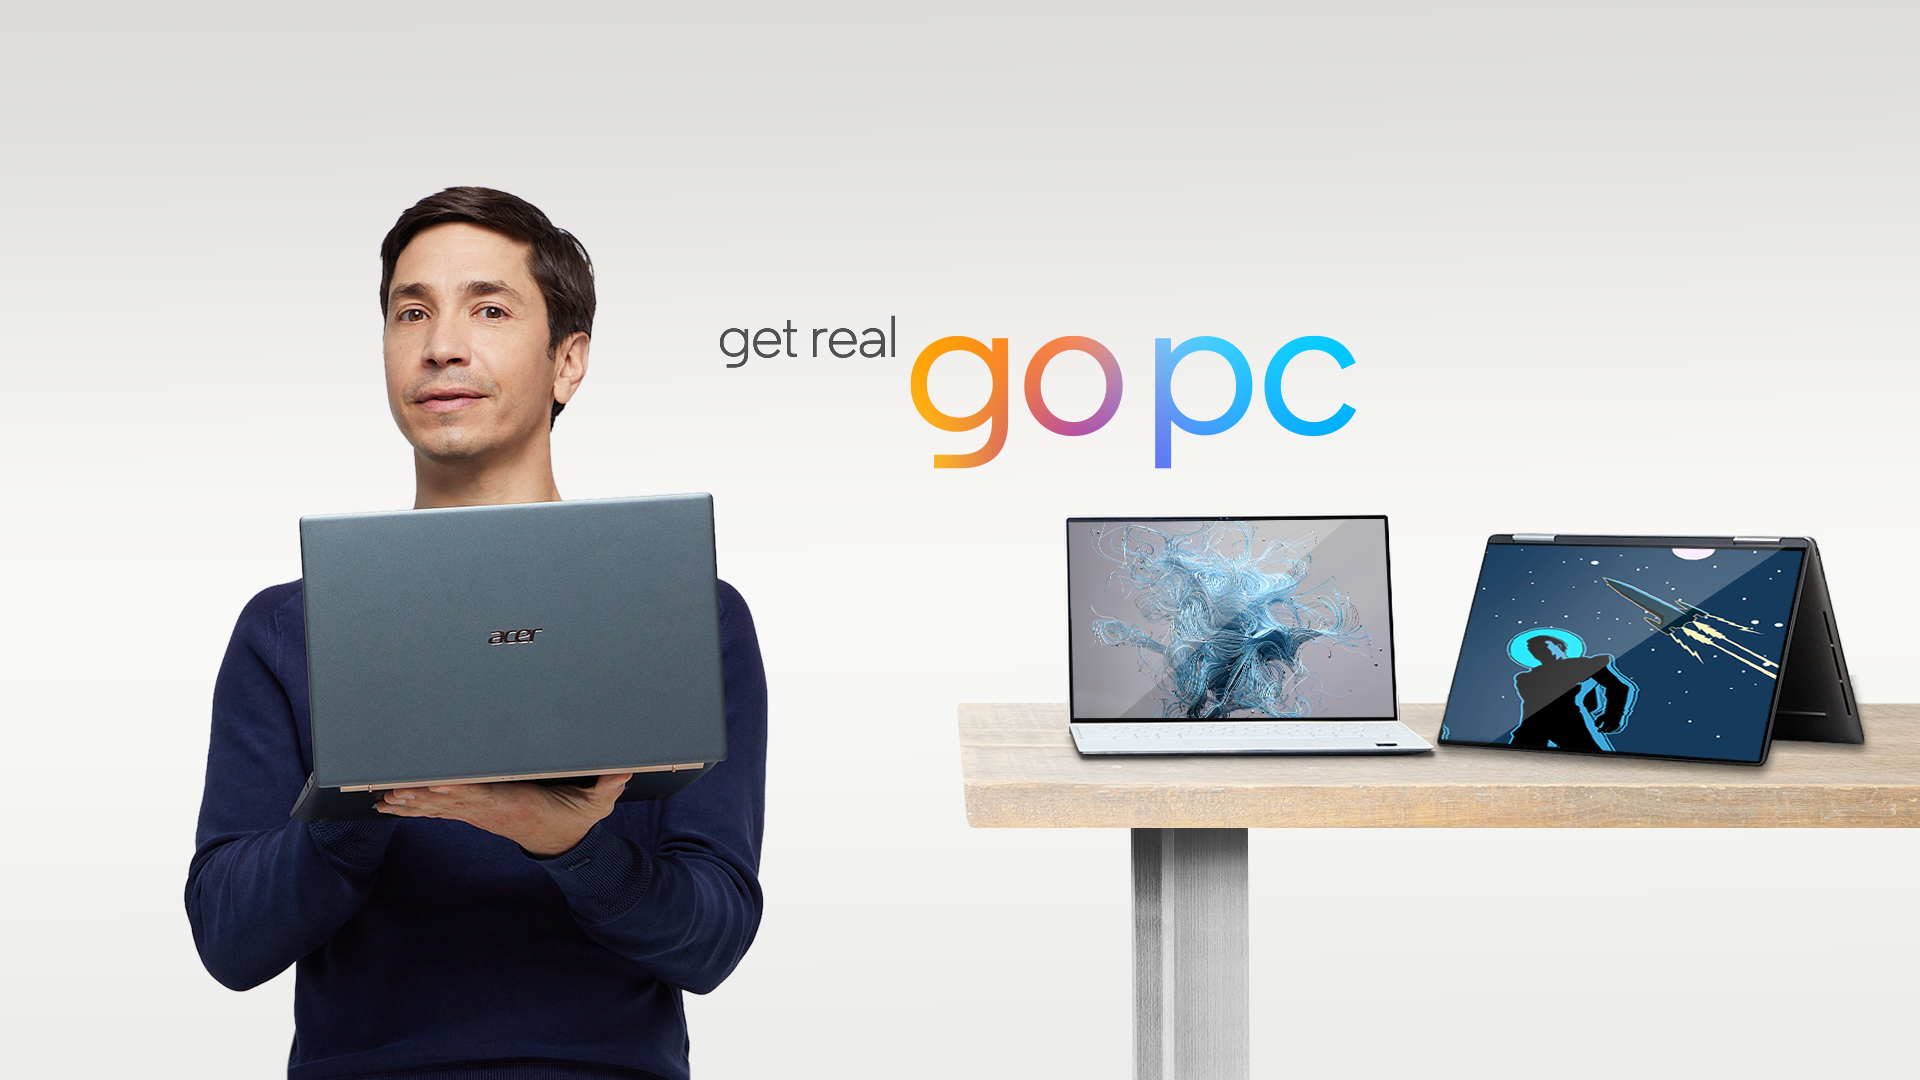 Intel's go PC campaign